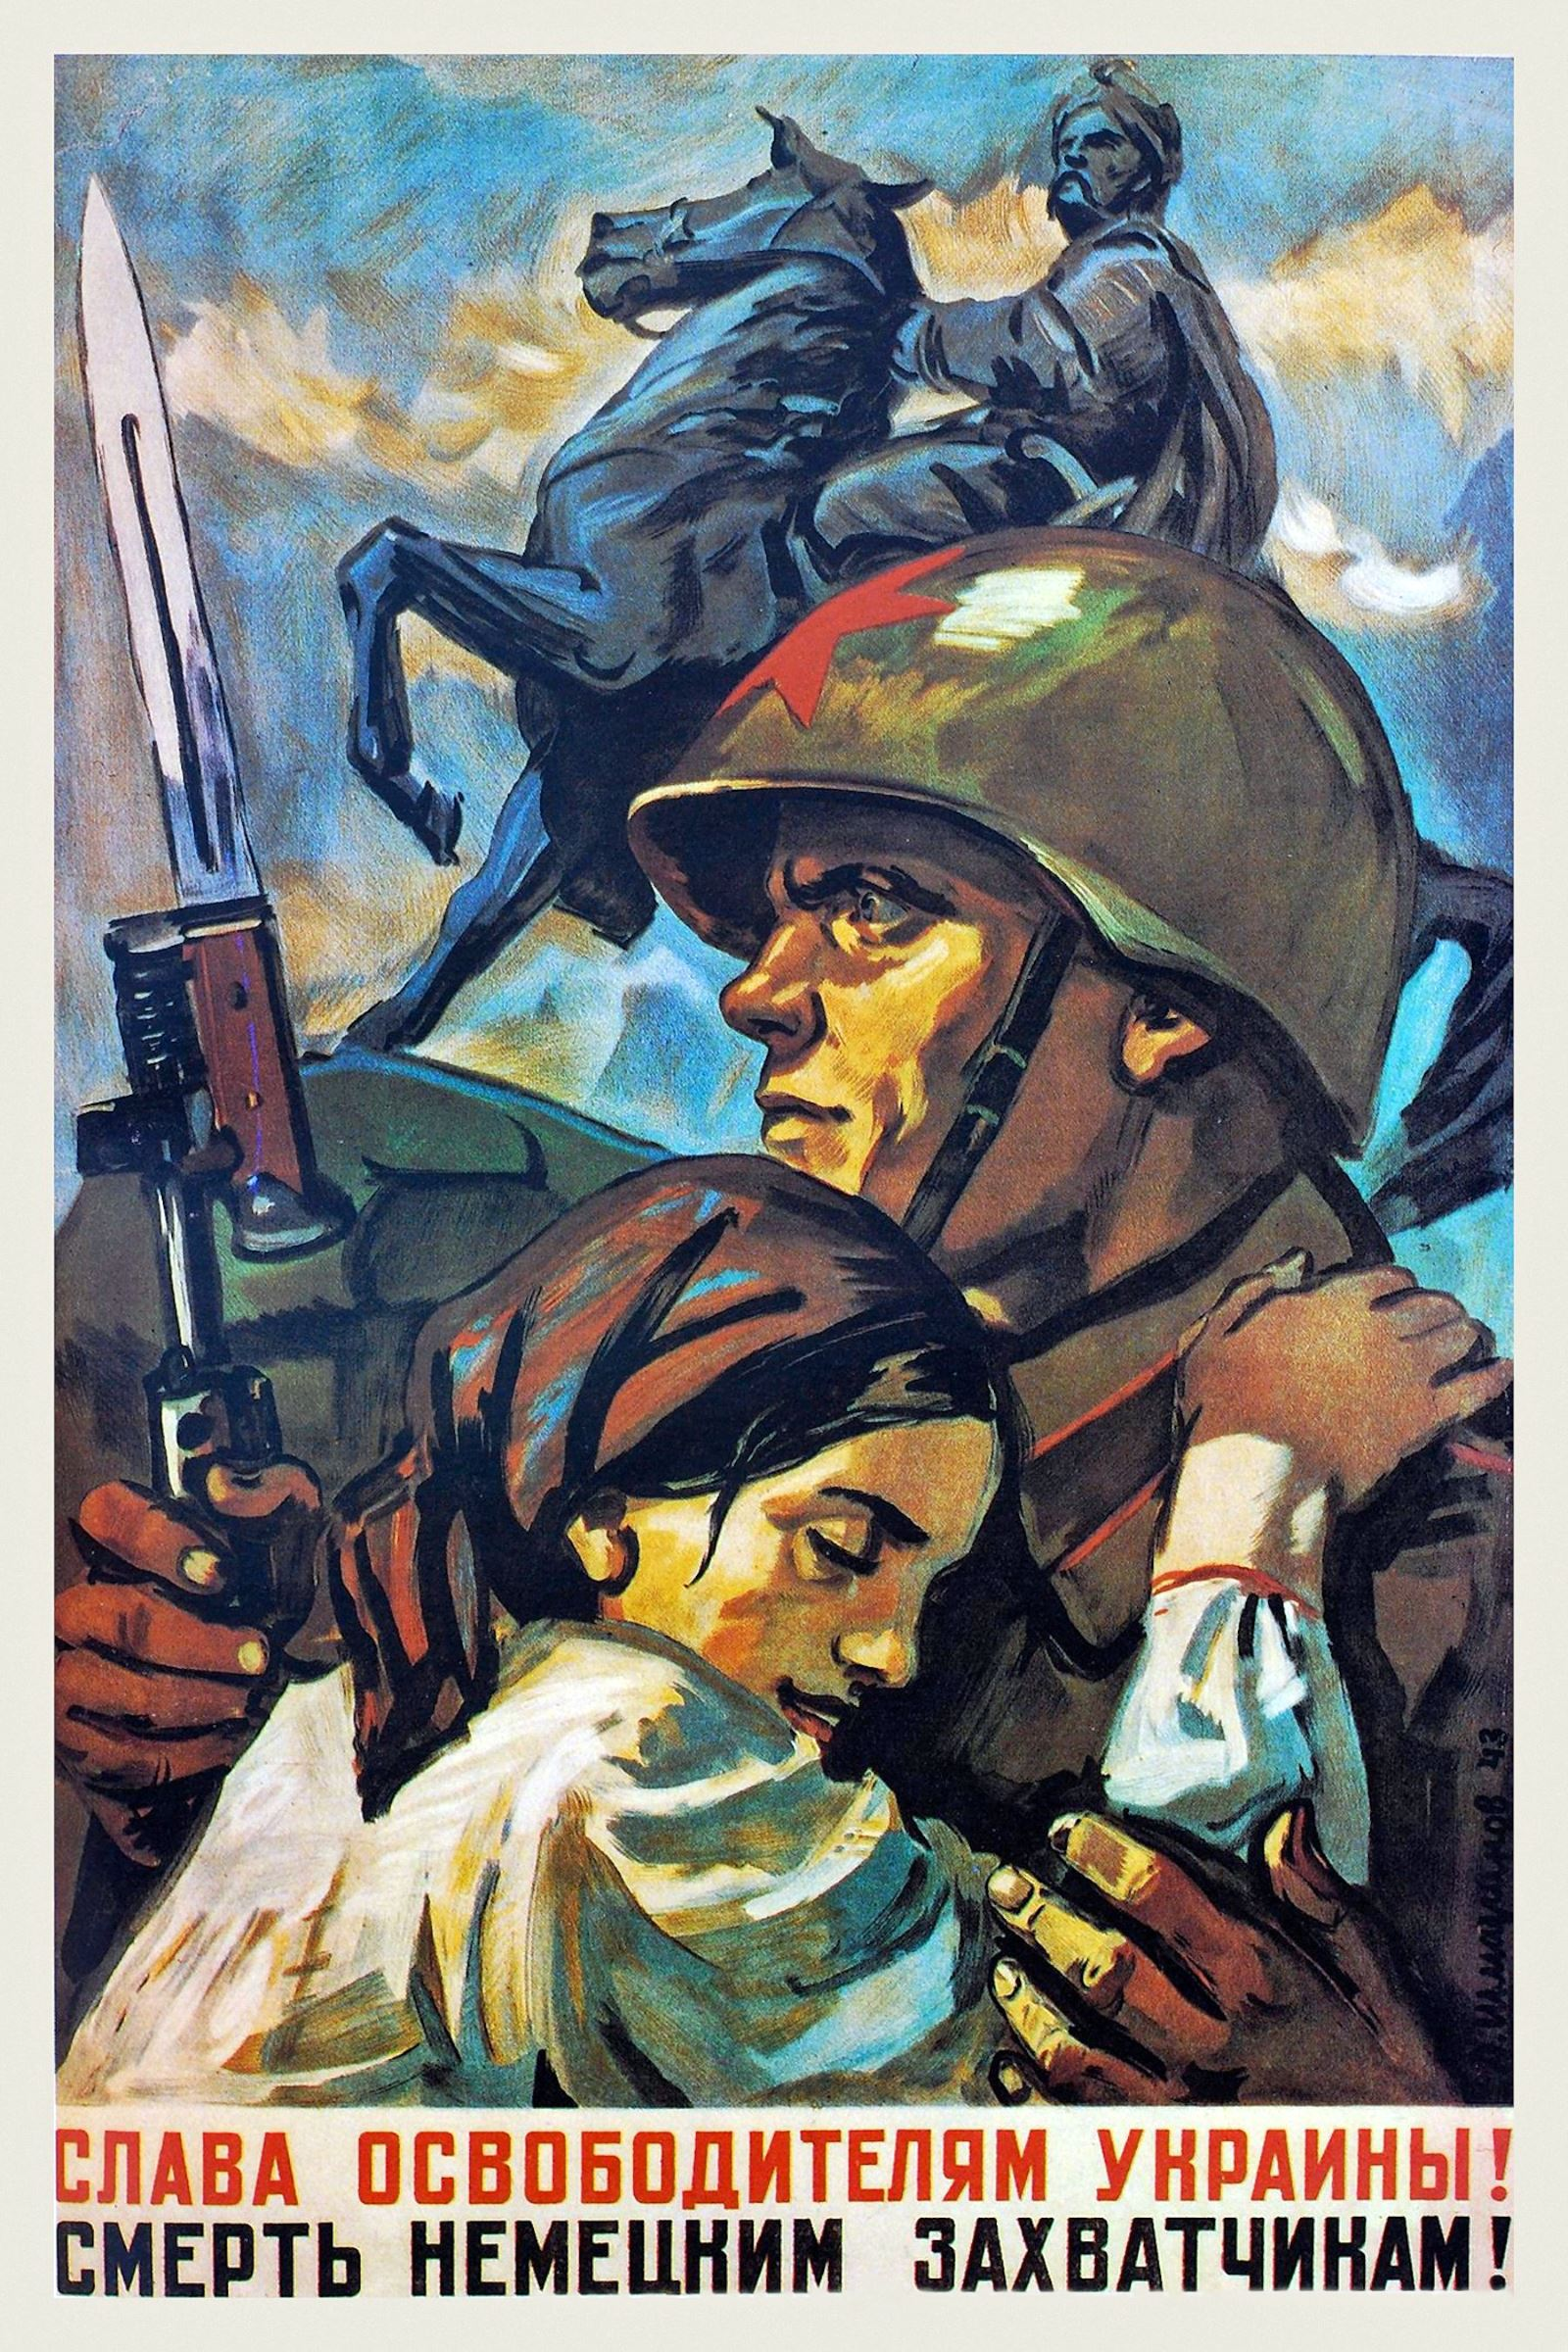 00 Dementy Shmarinov. Glory to the Liberators of the Ukraine!  1943